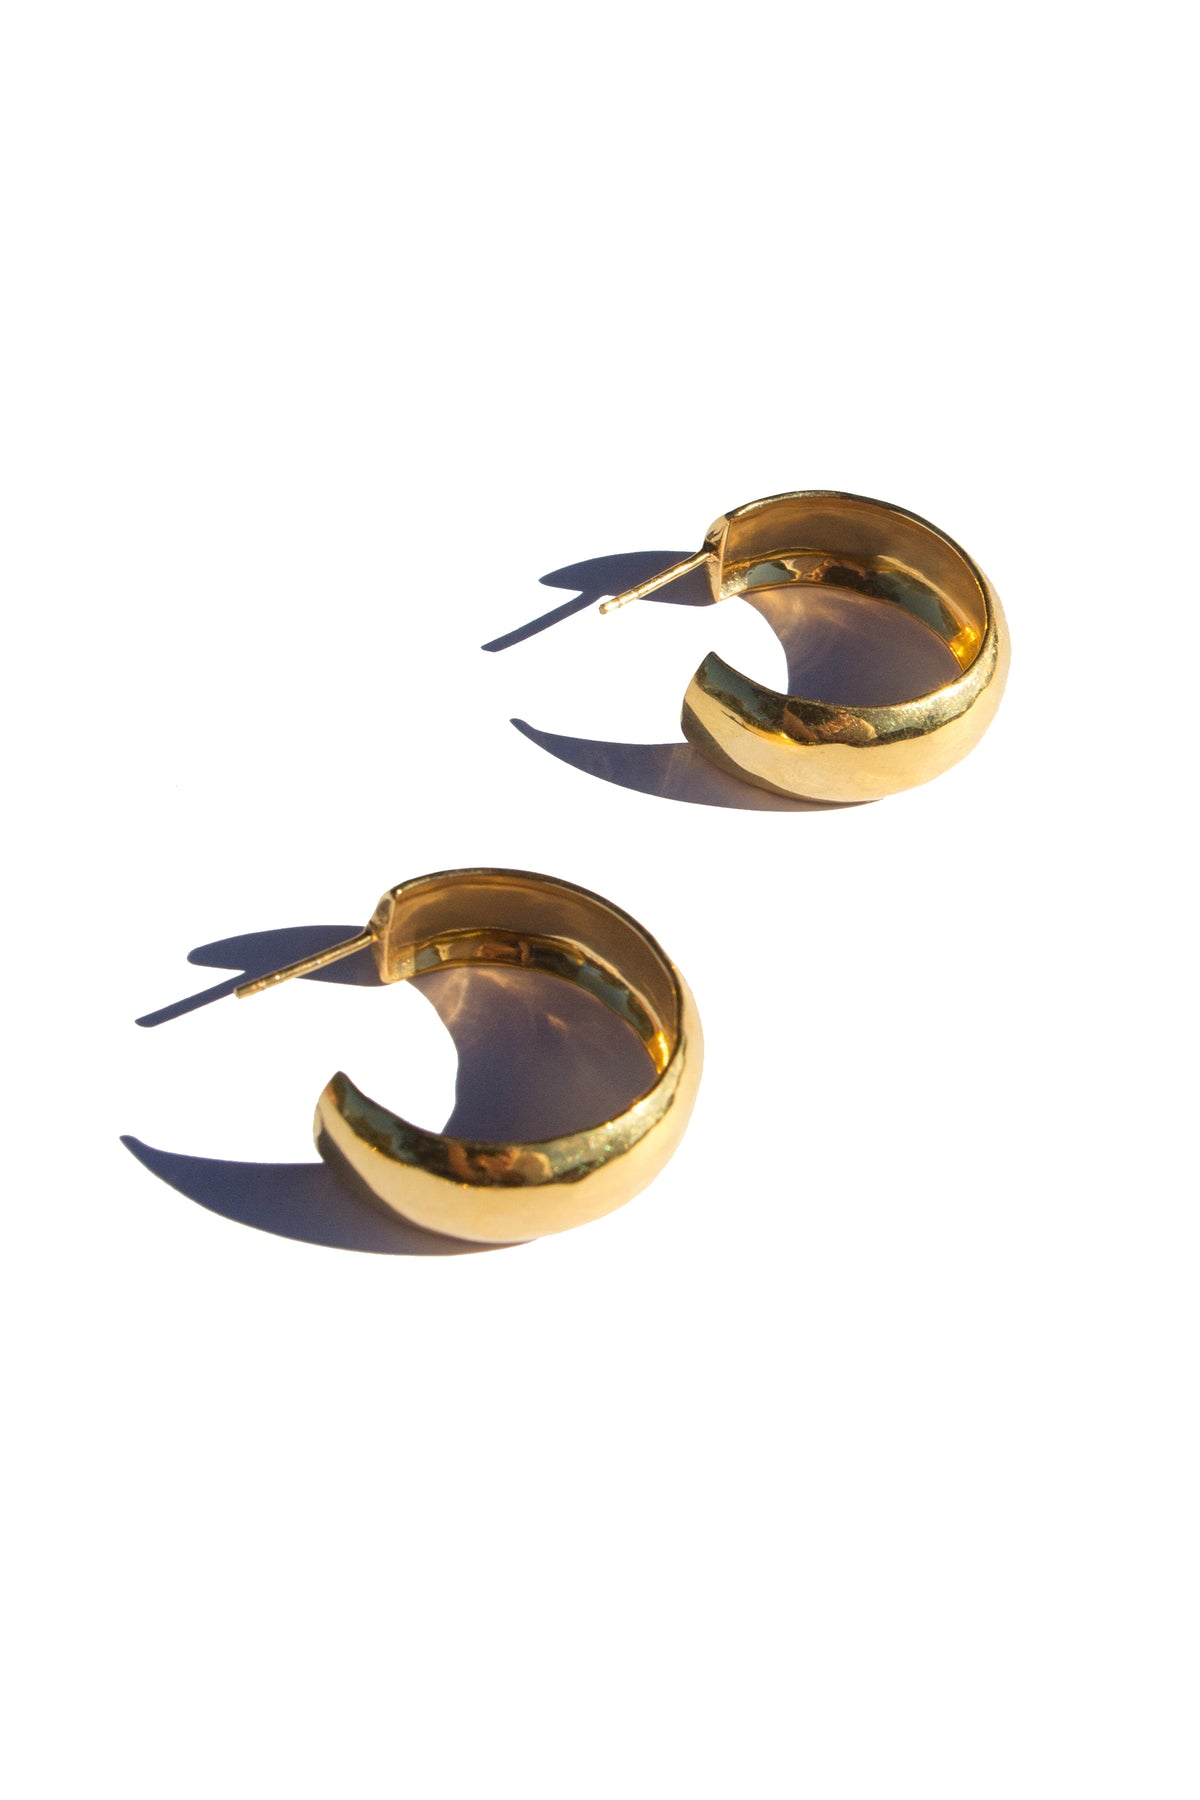 Flash jewellery Hollow Hoops in 18ct gold available on Maker's Mrkt Makers Market melbourne